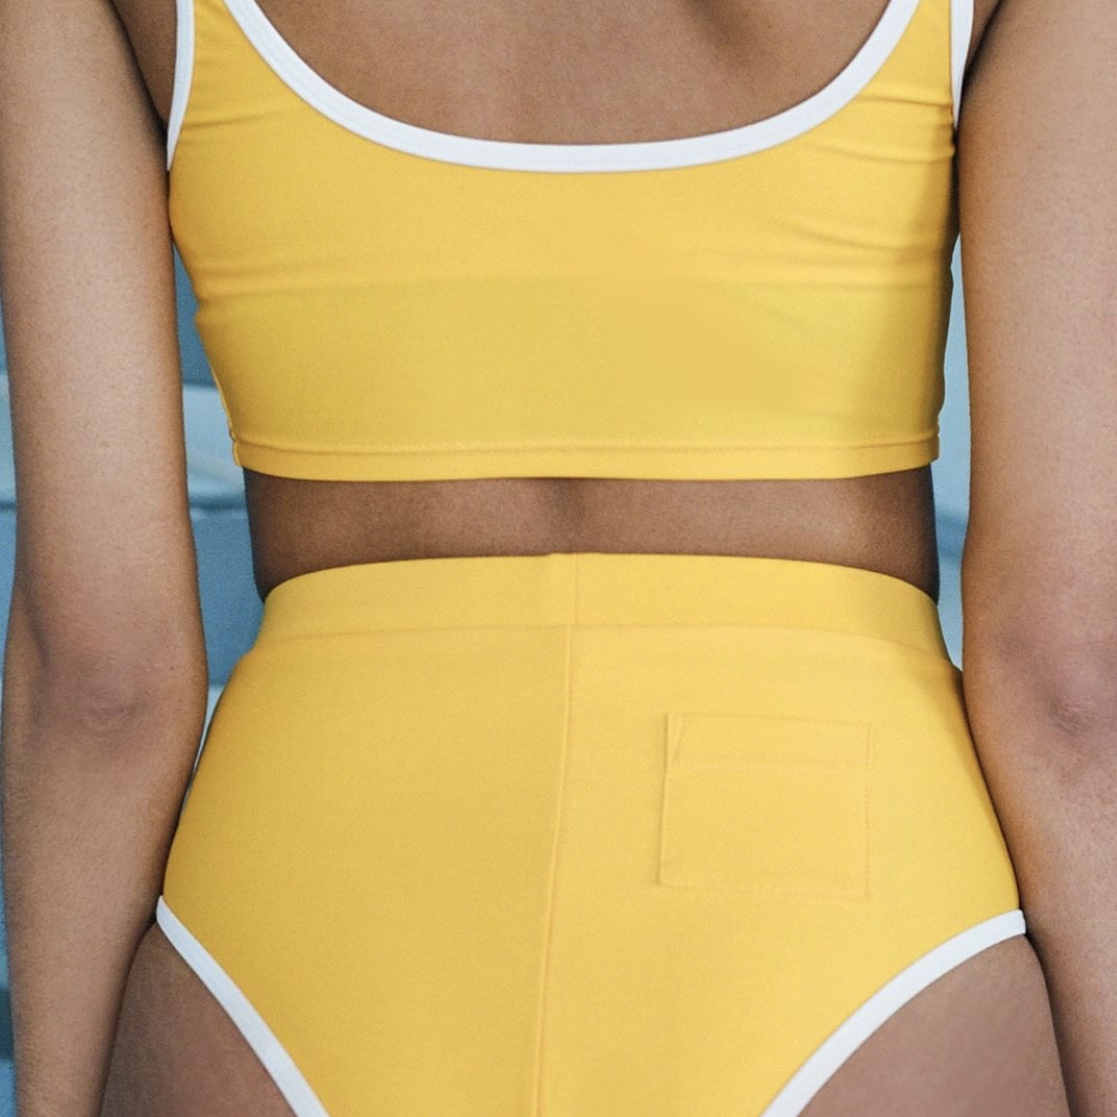 yellow swimsuit from one of the INSTAGRAM BRANDS